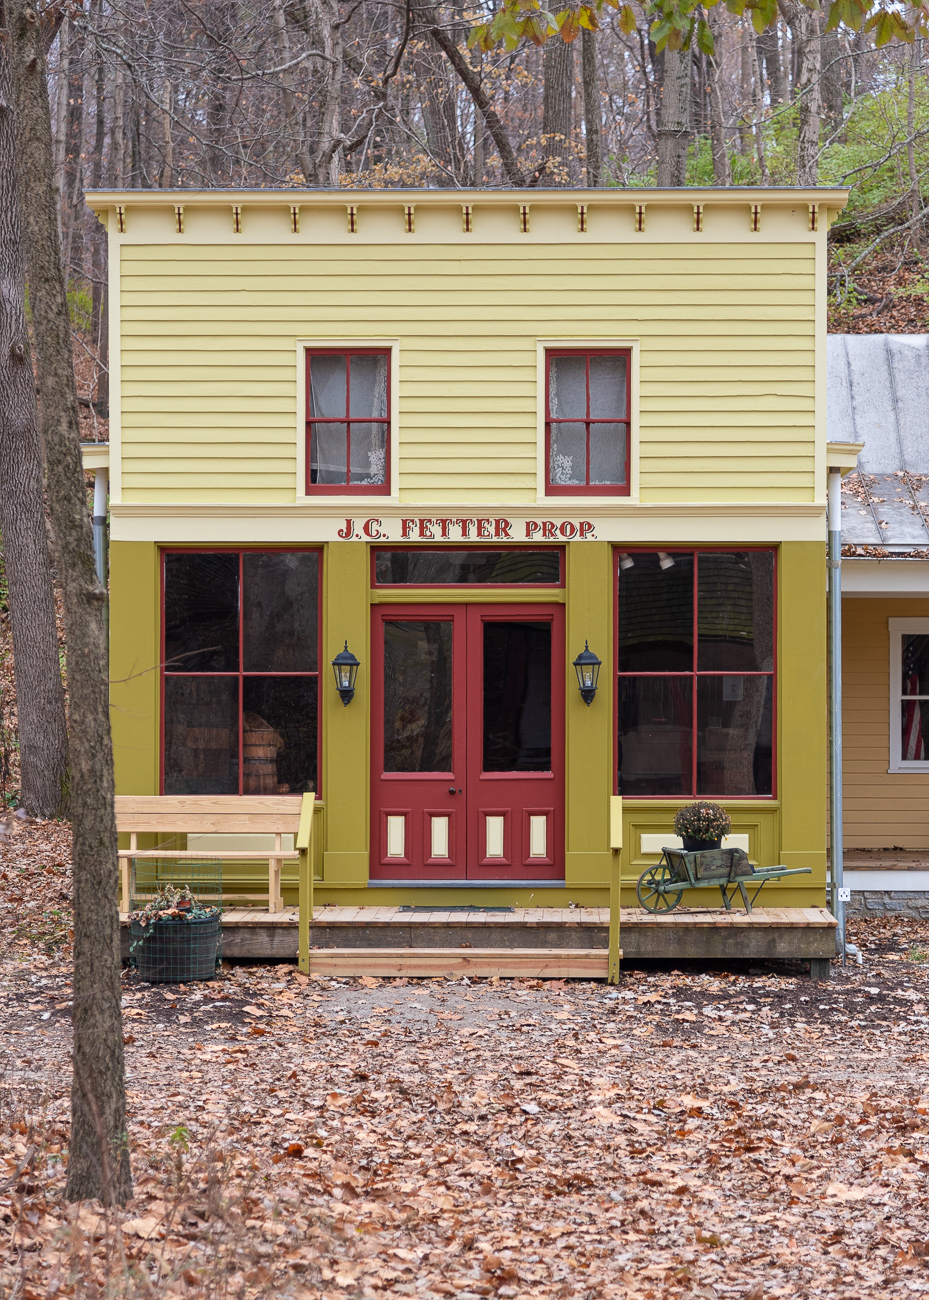 Owensville in Clermont County was once known as Boston. In Boston, the Fetter General Store stood along Main Street. It was built in 1866 and belonged to John C. Fetter in the the 1870s. The store was restored and moved to Heritage Village in 1983, where it now connects to the Schram Print Shop, a newer building made to replicate an old building that's filled with old printing press artifacts and machinery.{ }/ Image: Phil Armstrong, Cincinnati Refined // Published: 12.5.19